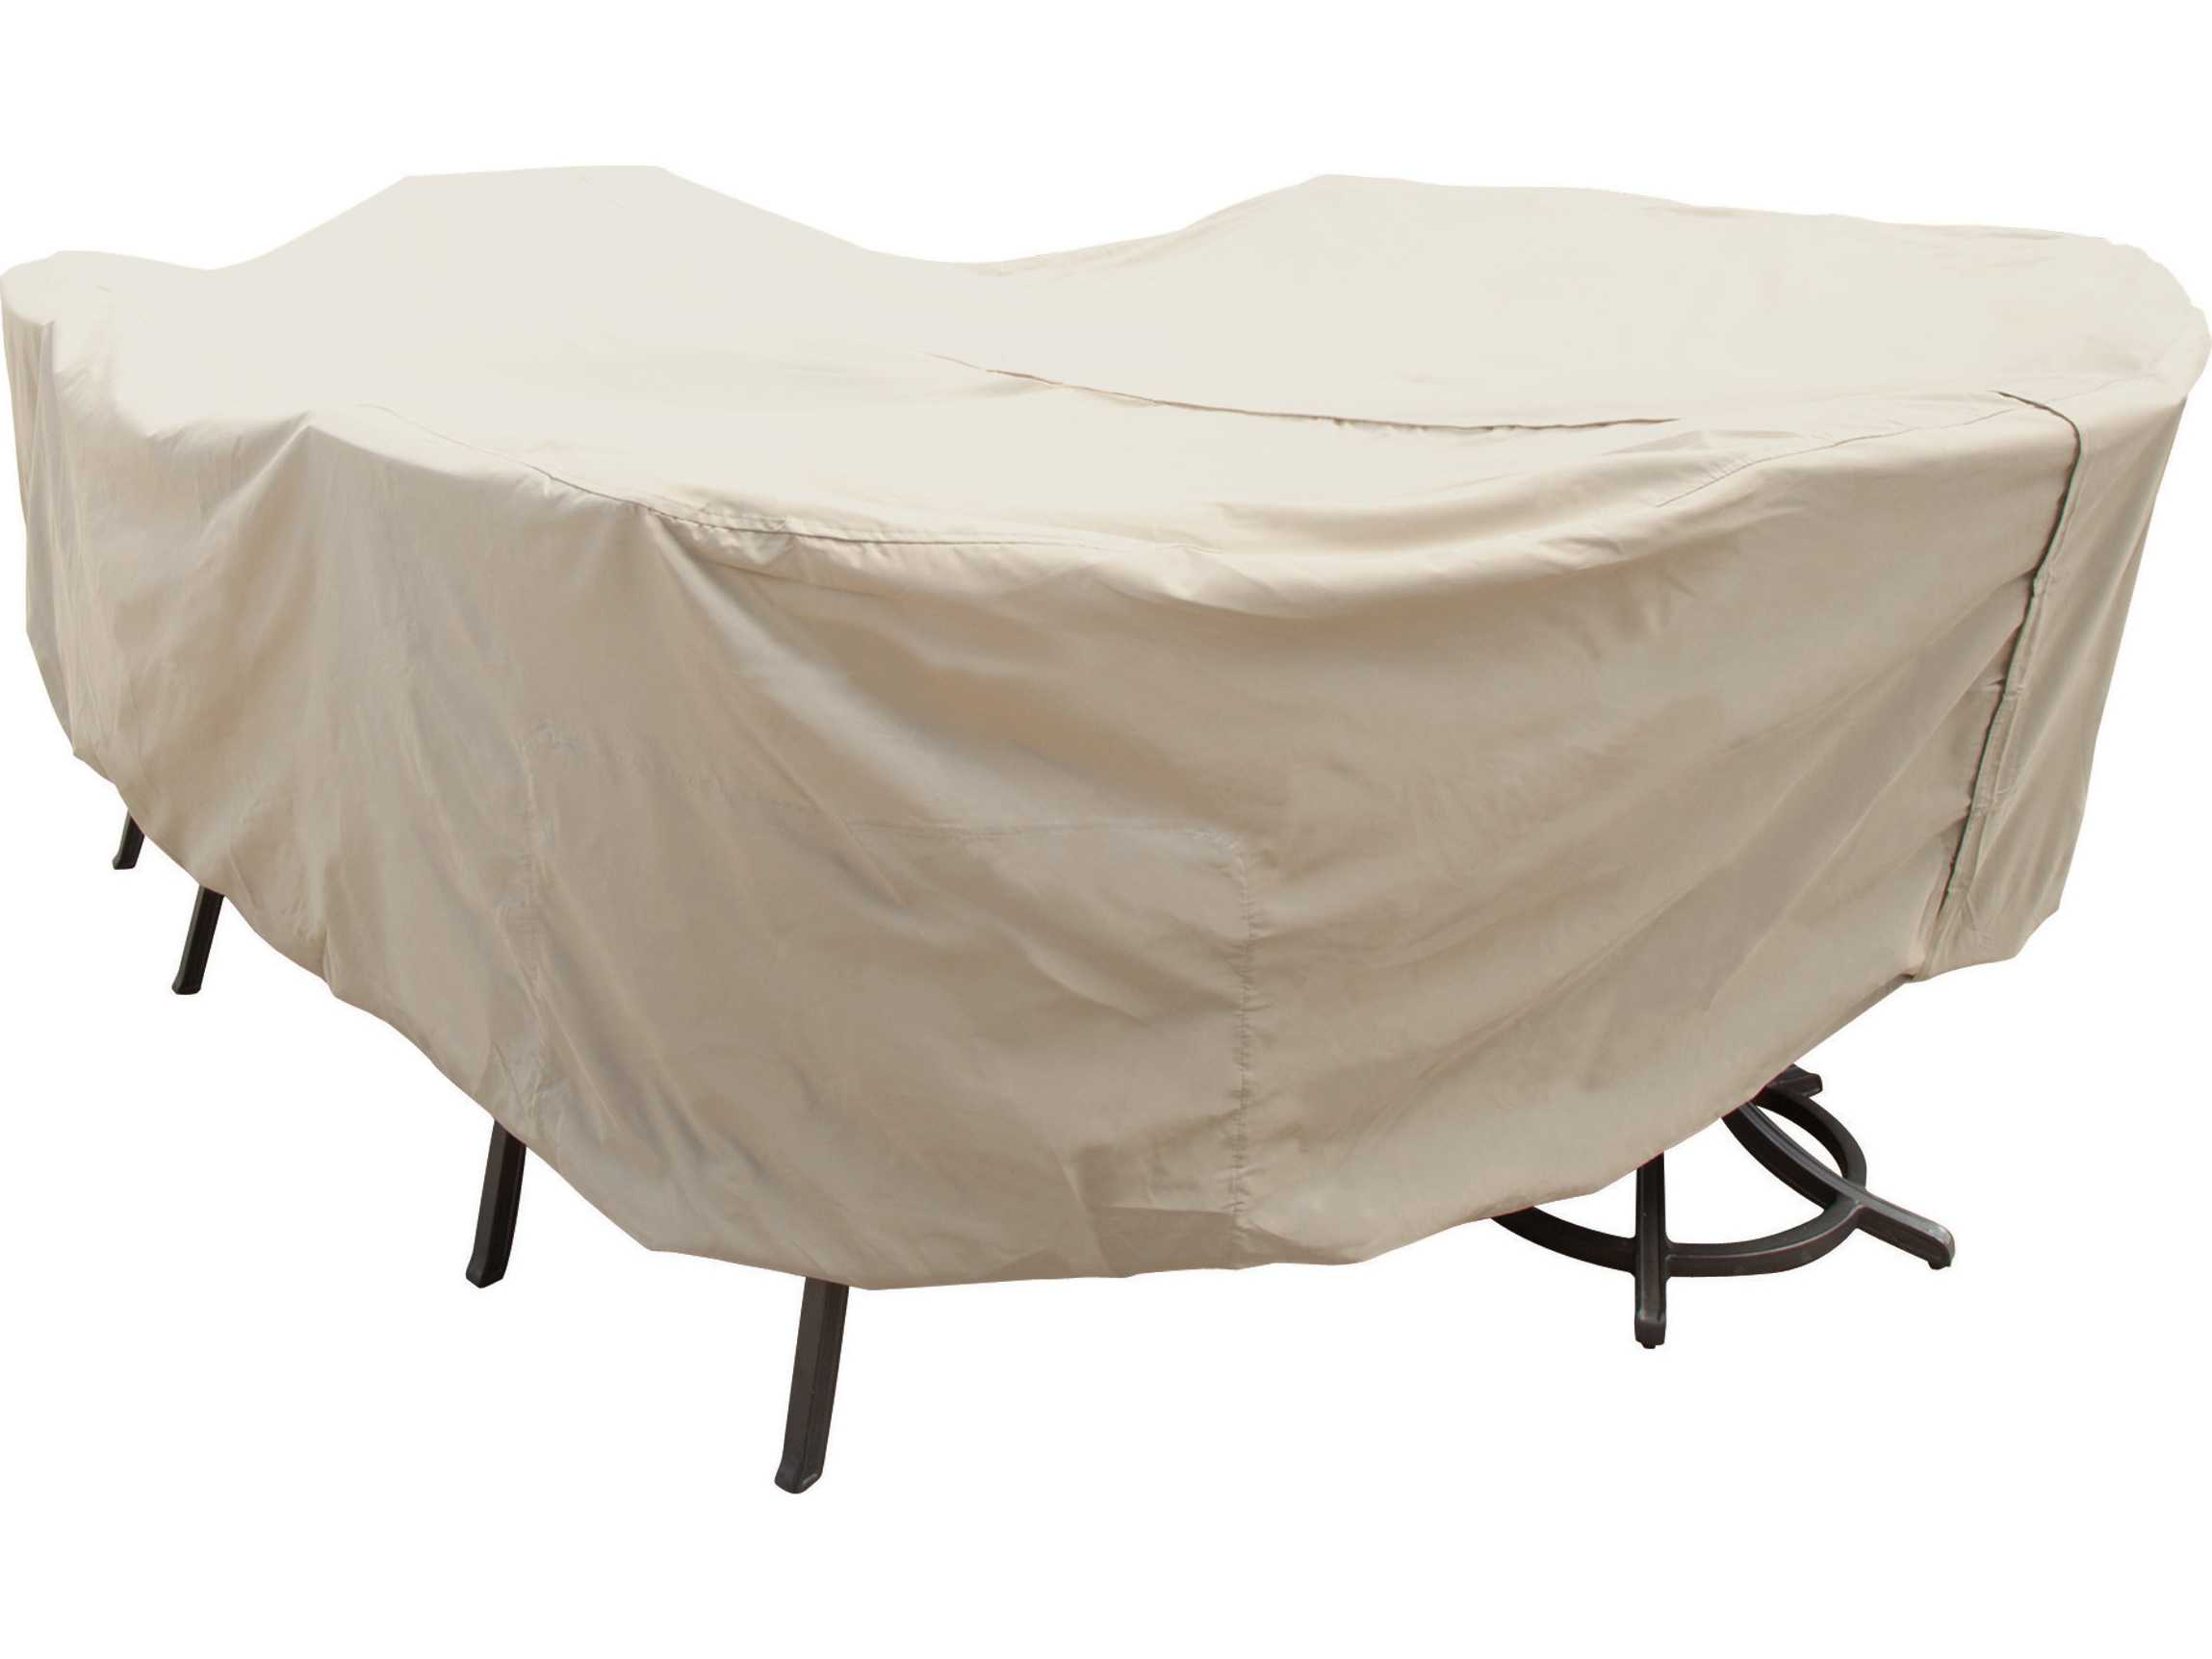 Treasure Garden X Oval Rectangle Table & Chairs Cover with Umbrella